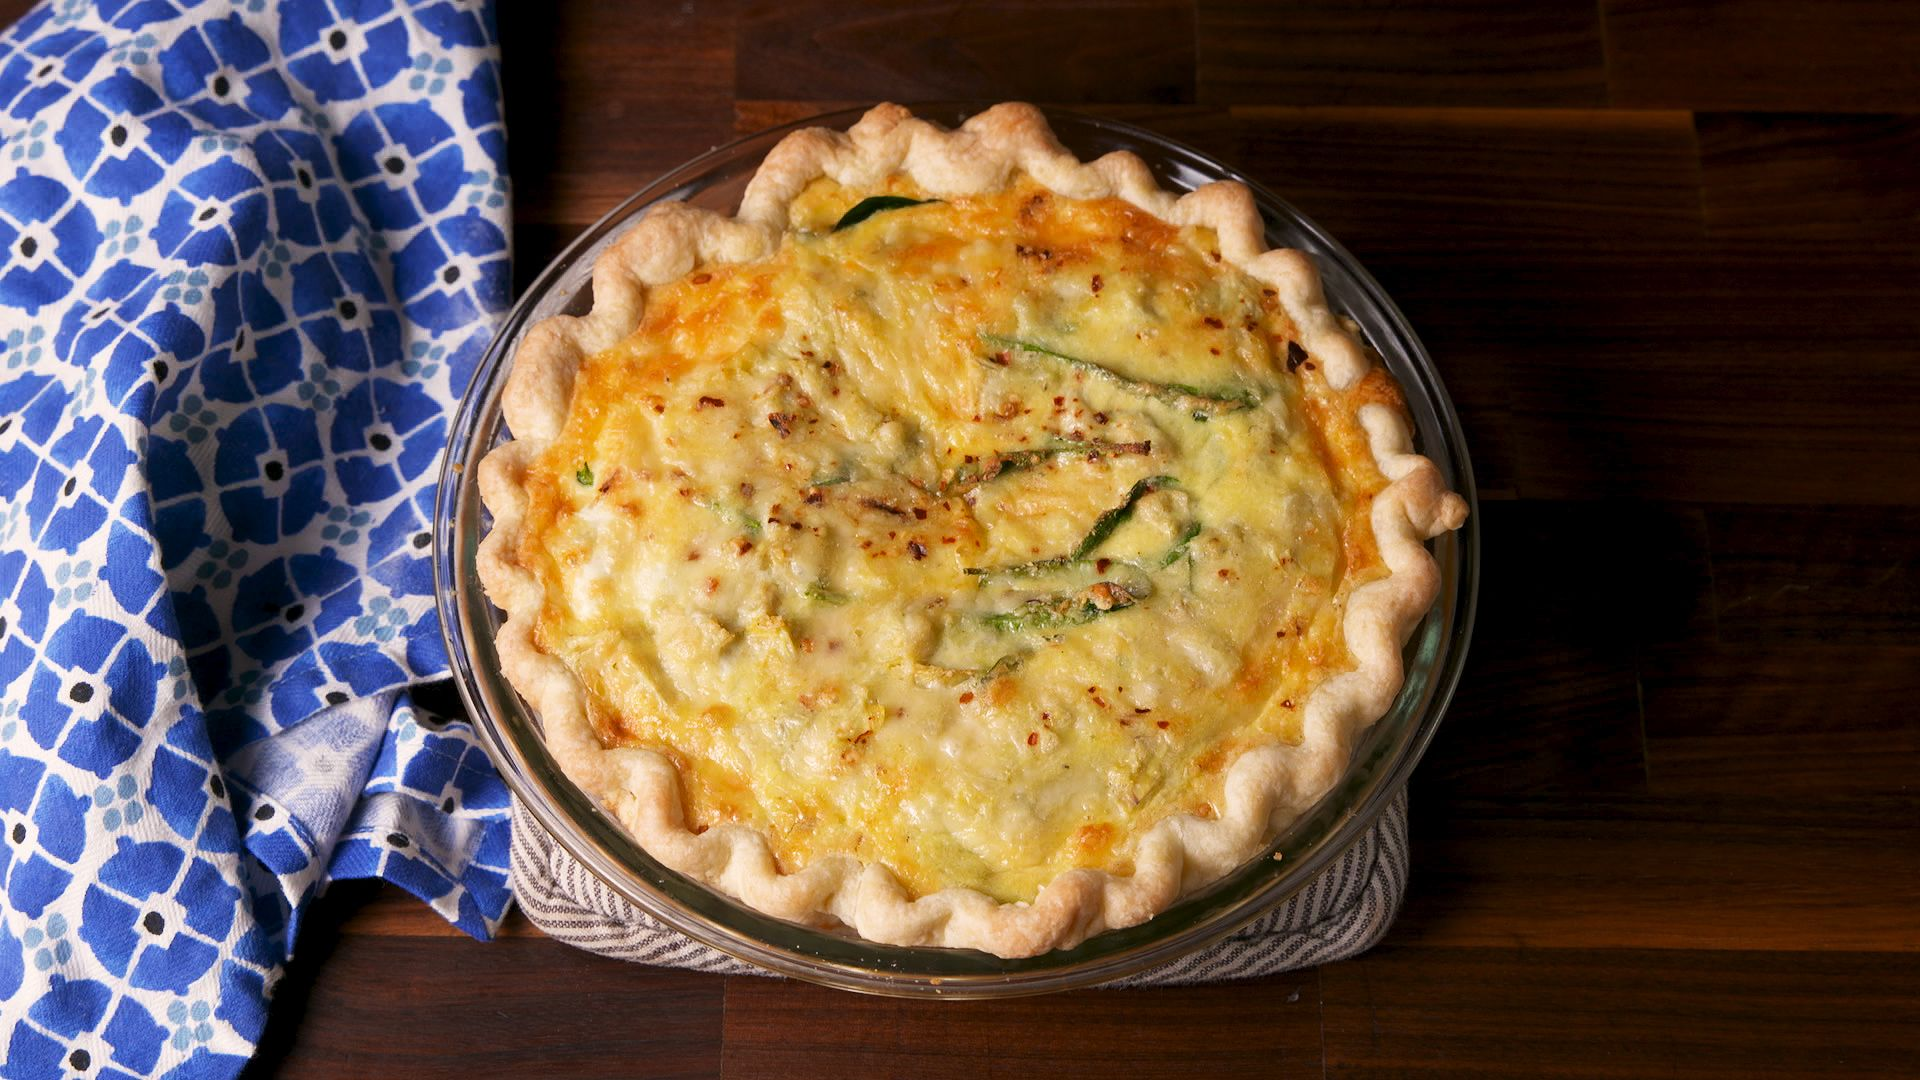 Best Spinach And Artichoke Quiche Recipe How To Make Spinach And Artichoke Quiche